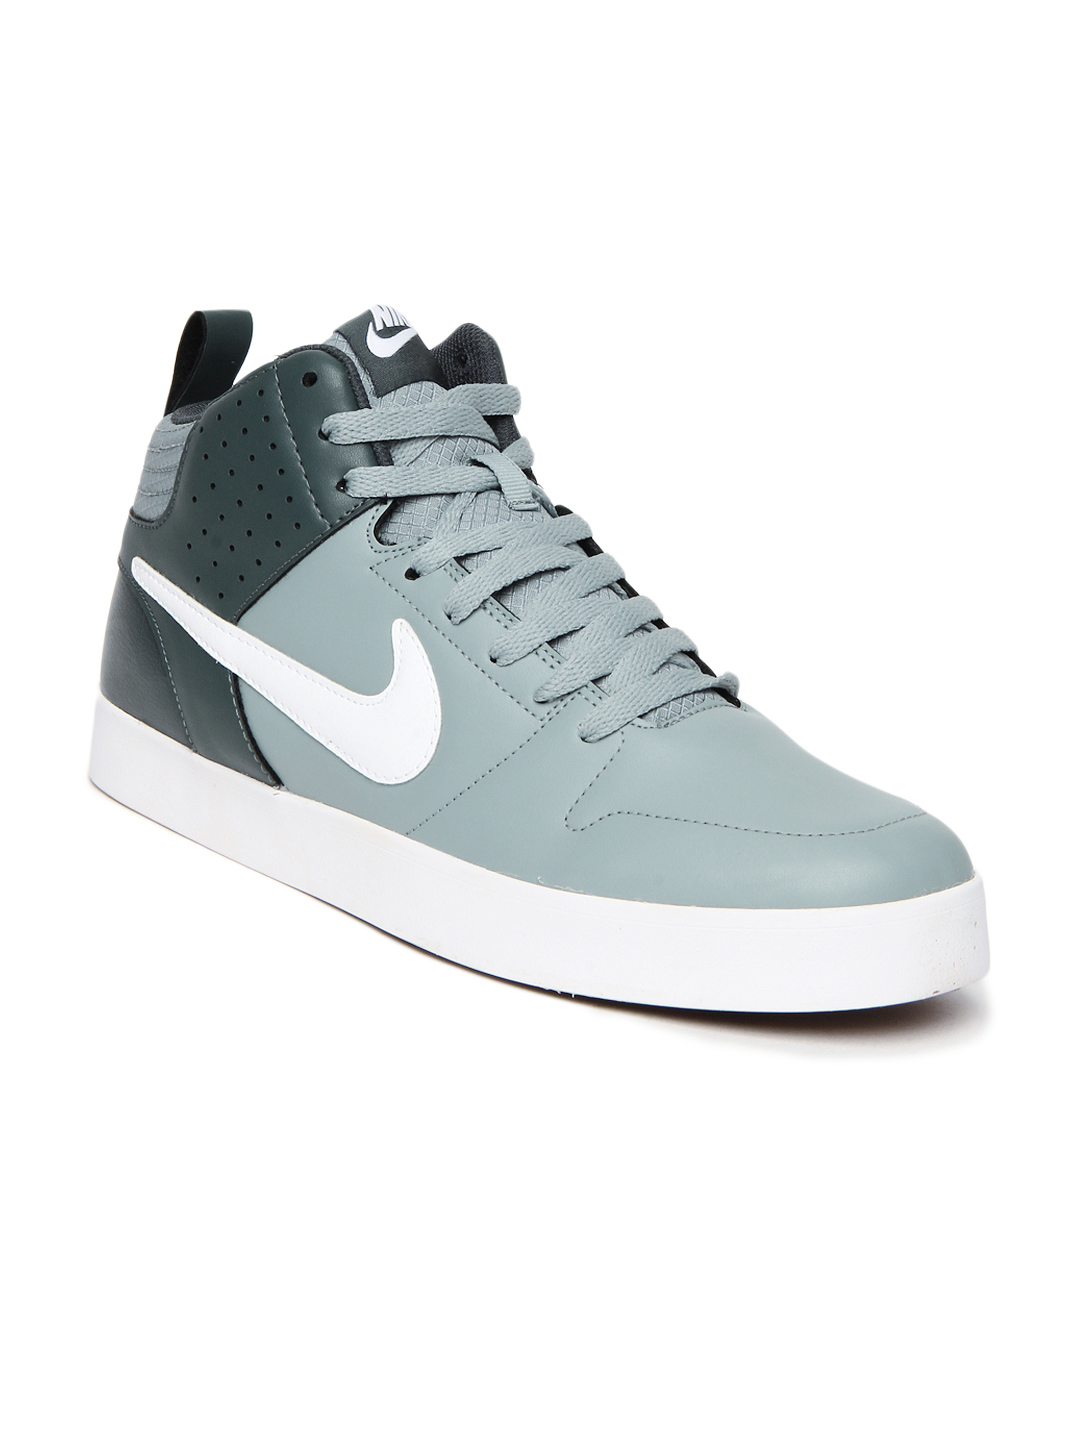 Nike Casual Shoes Men Blue India Model Aviation